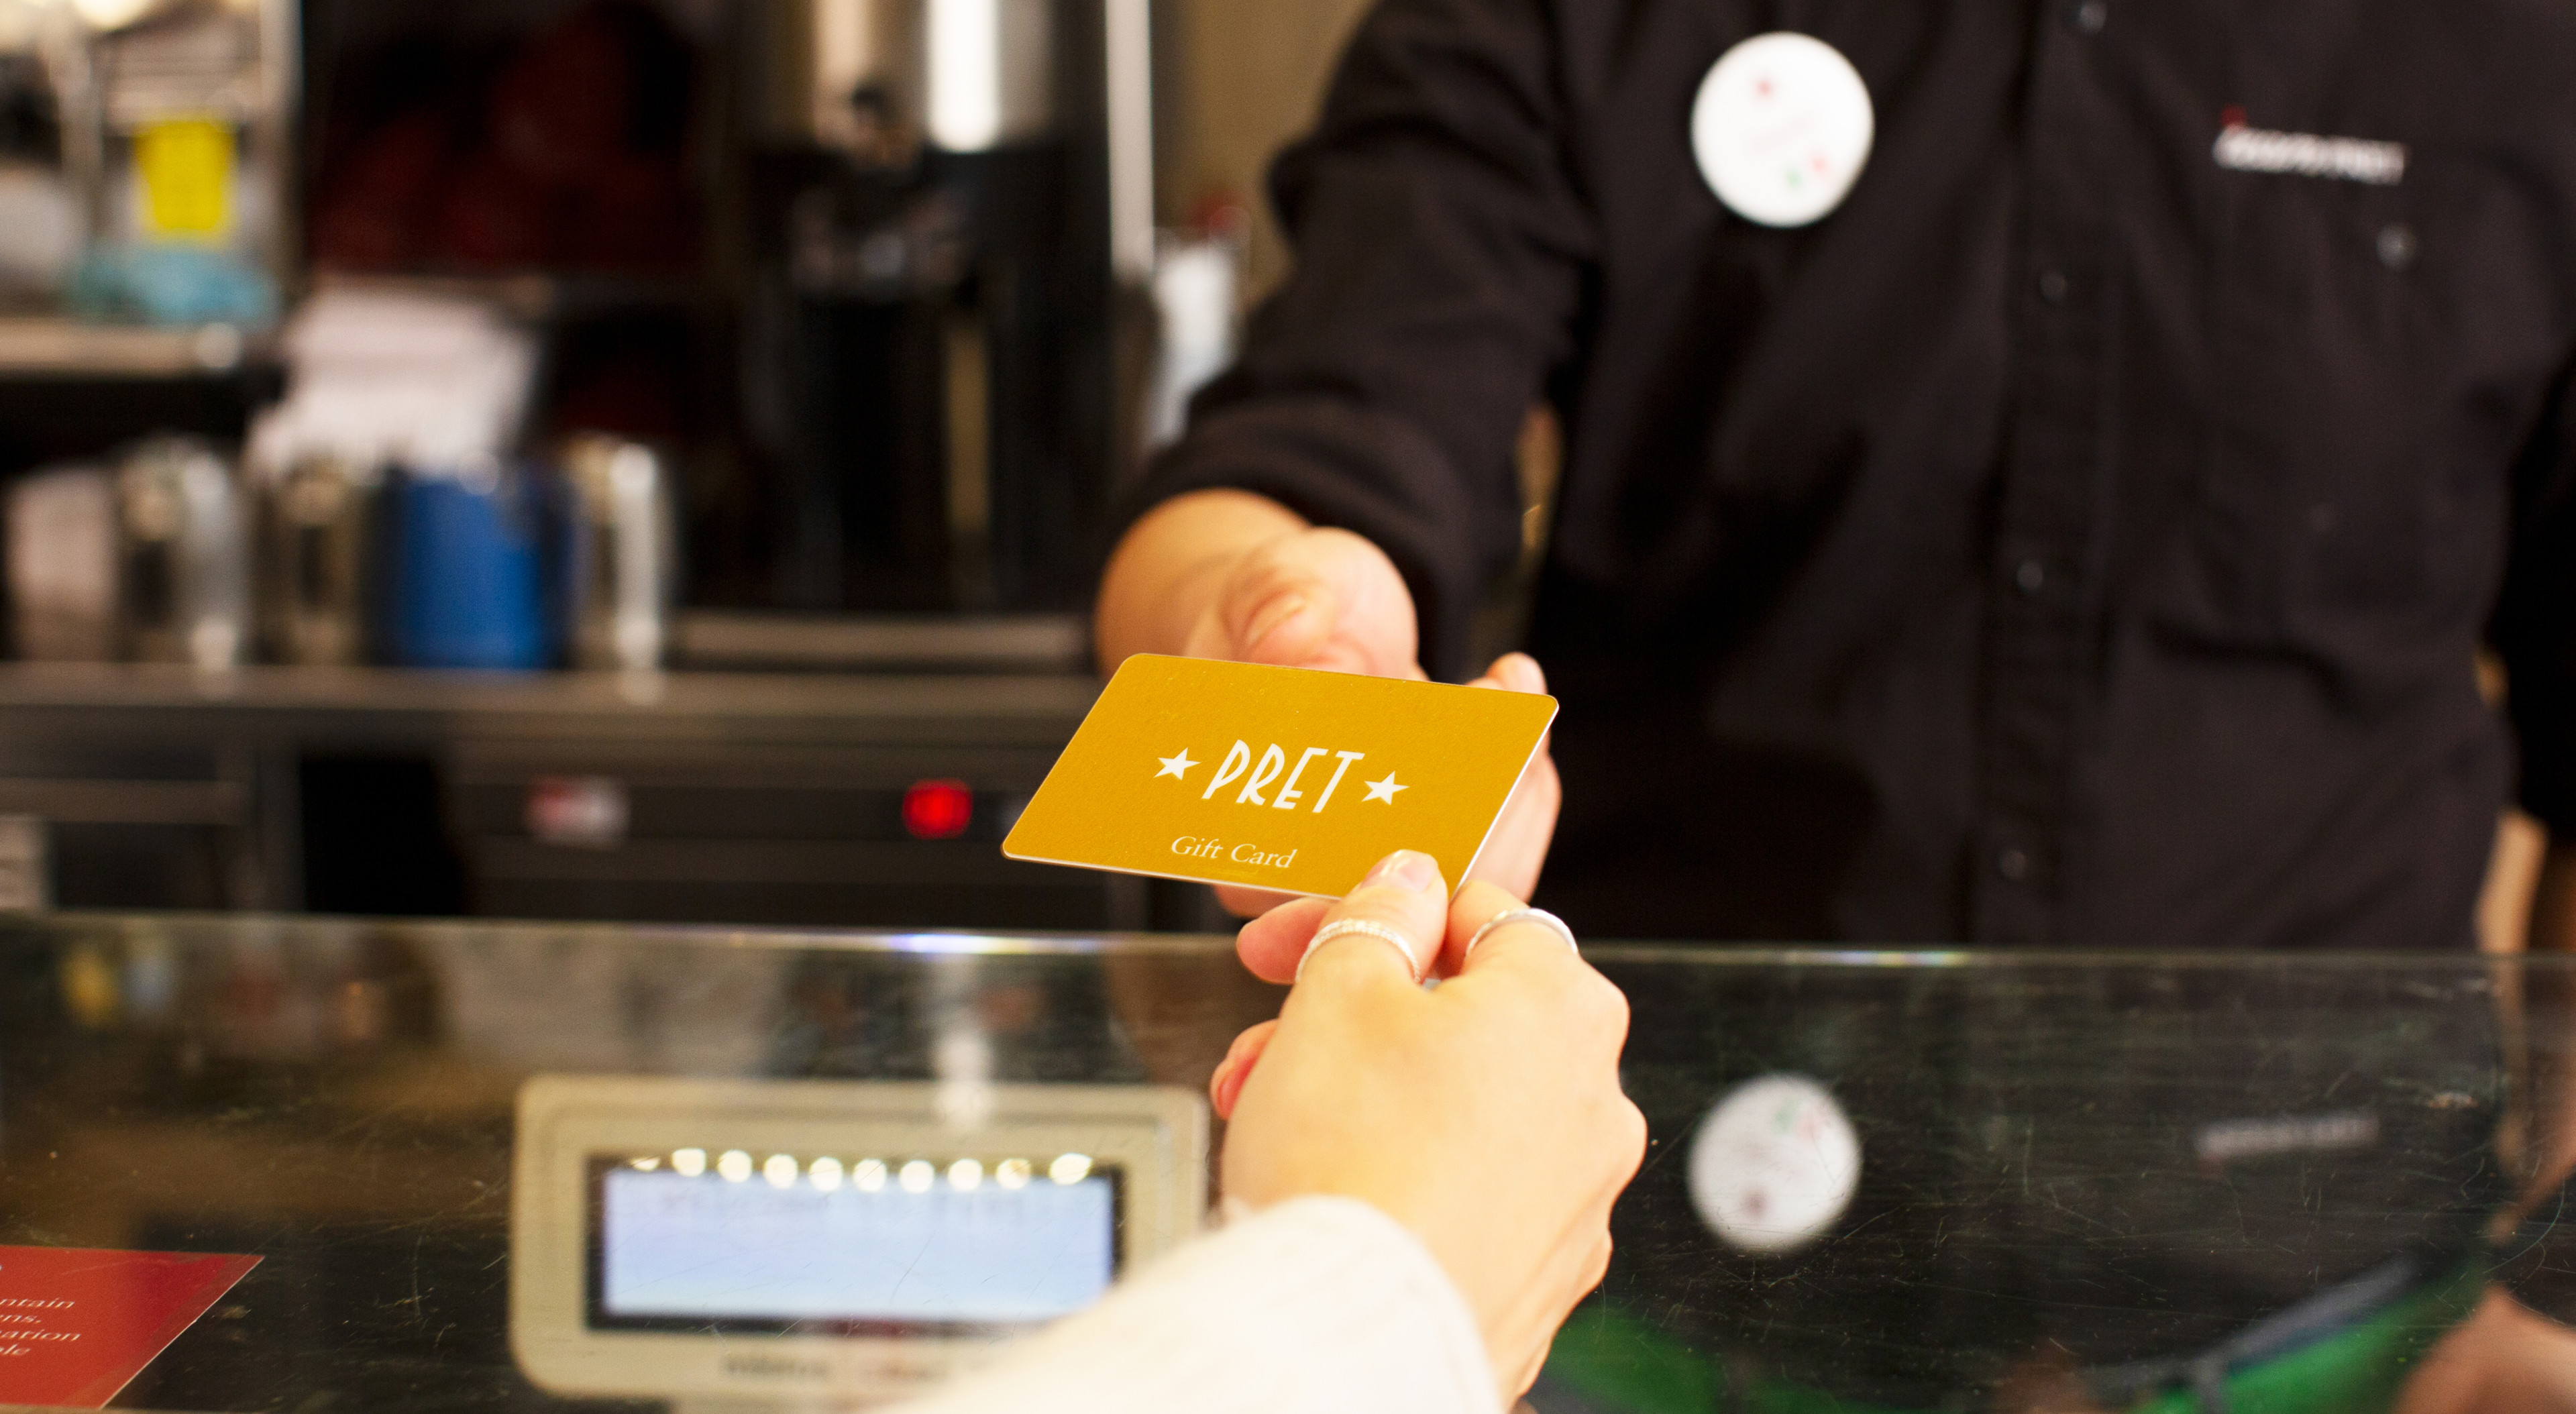 The Pret Gift Card